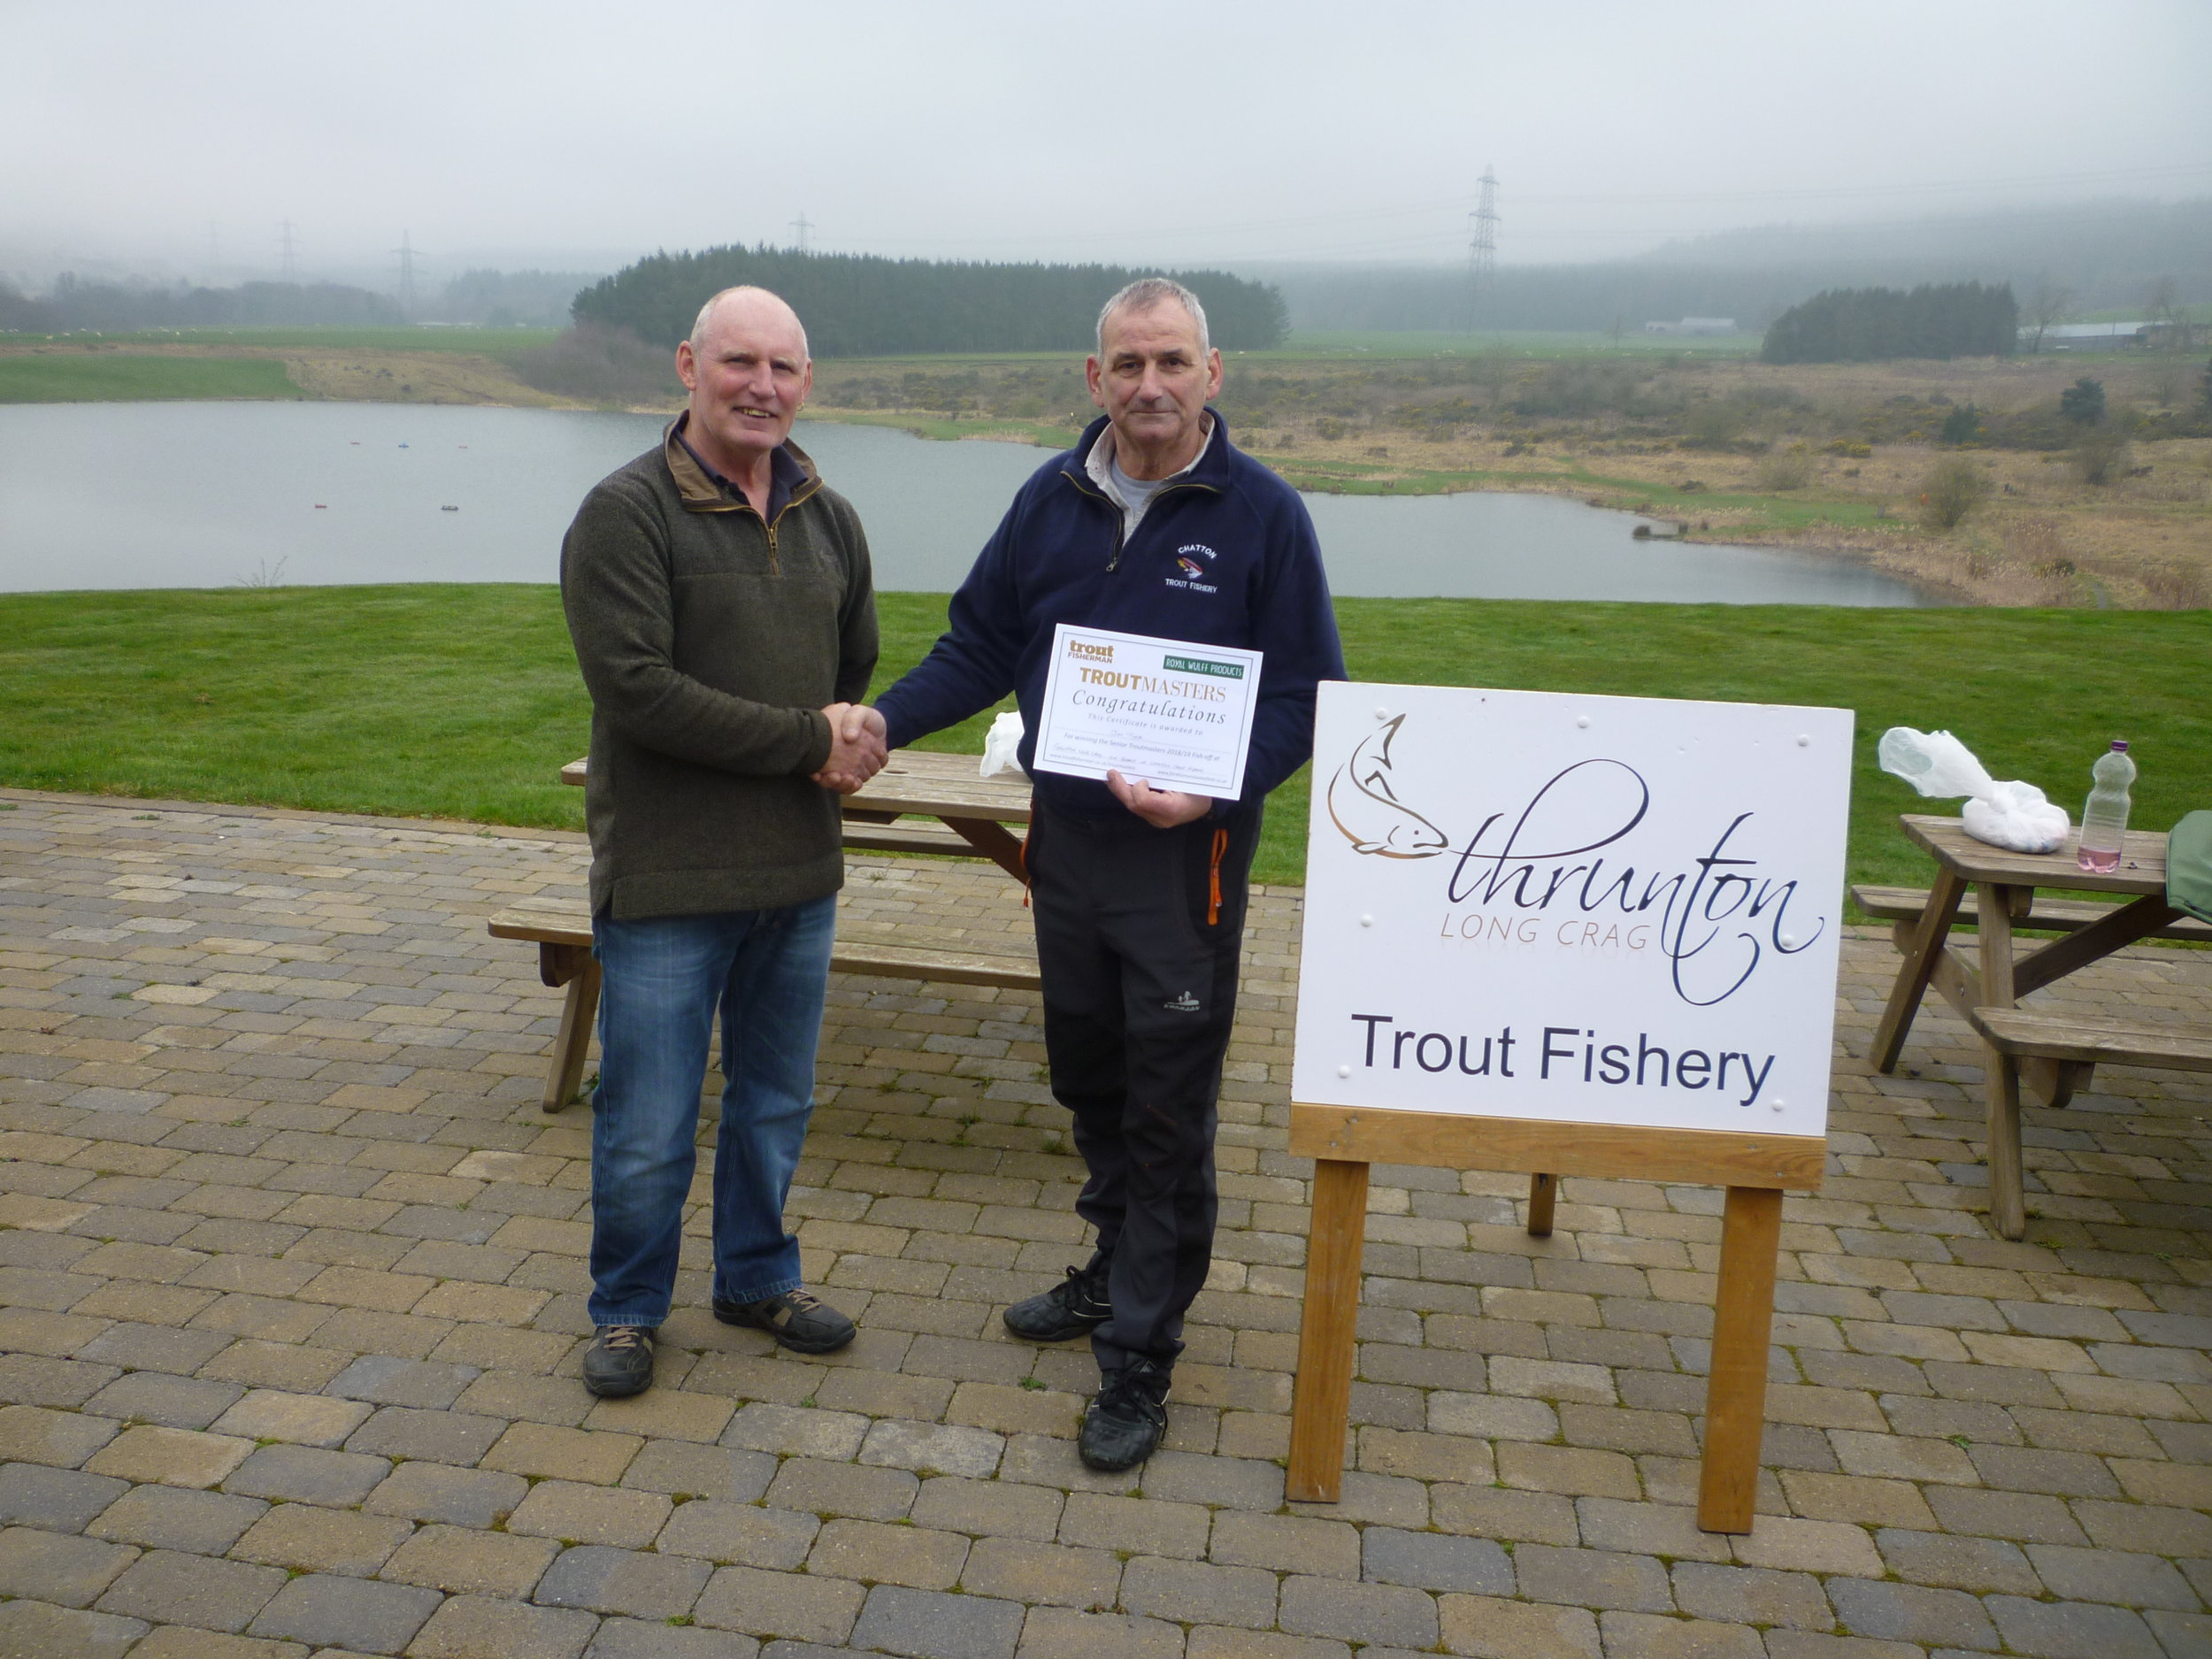 Jim Tuck (right), winner of the Troutmasters fish-off for Chatton which took place at Thrunton.